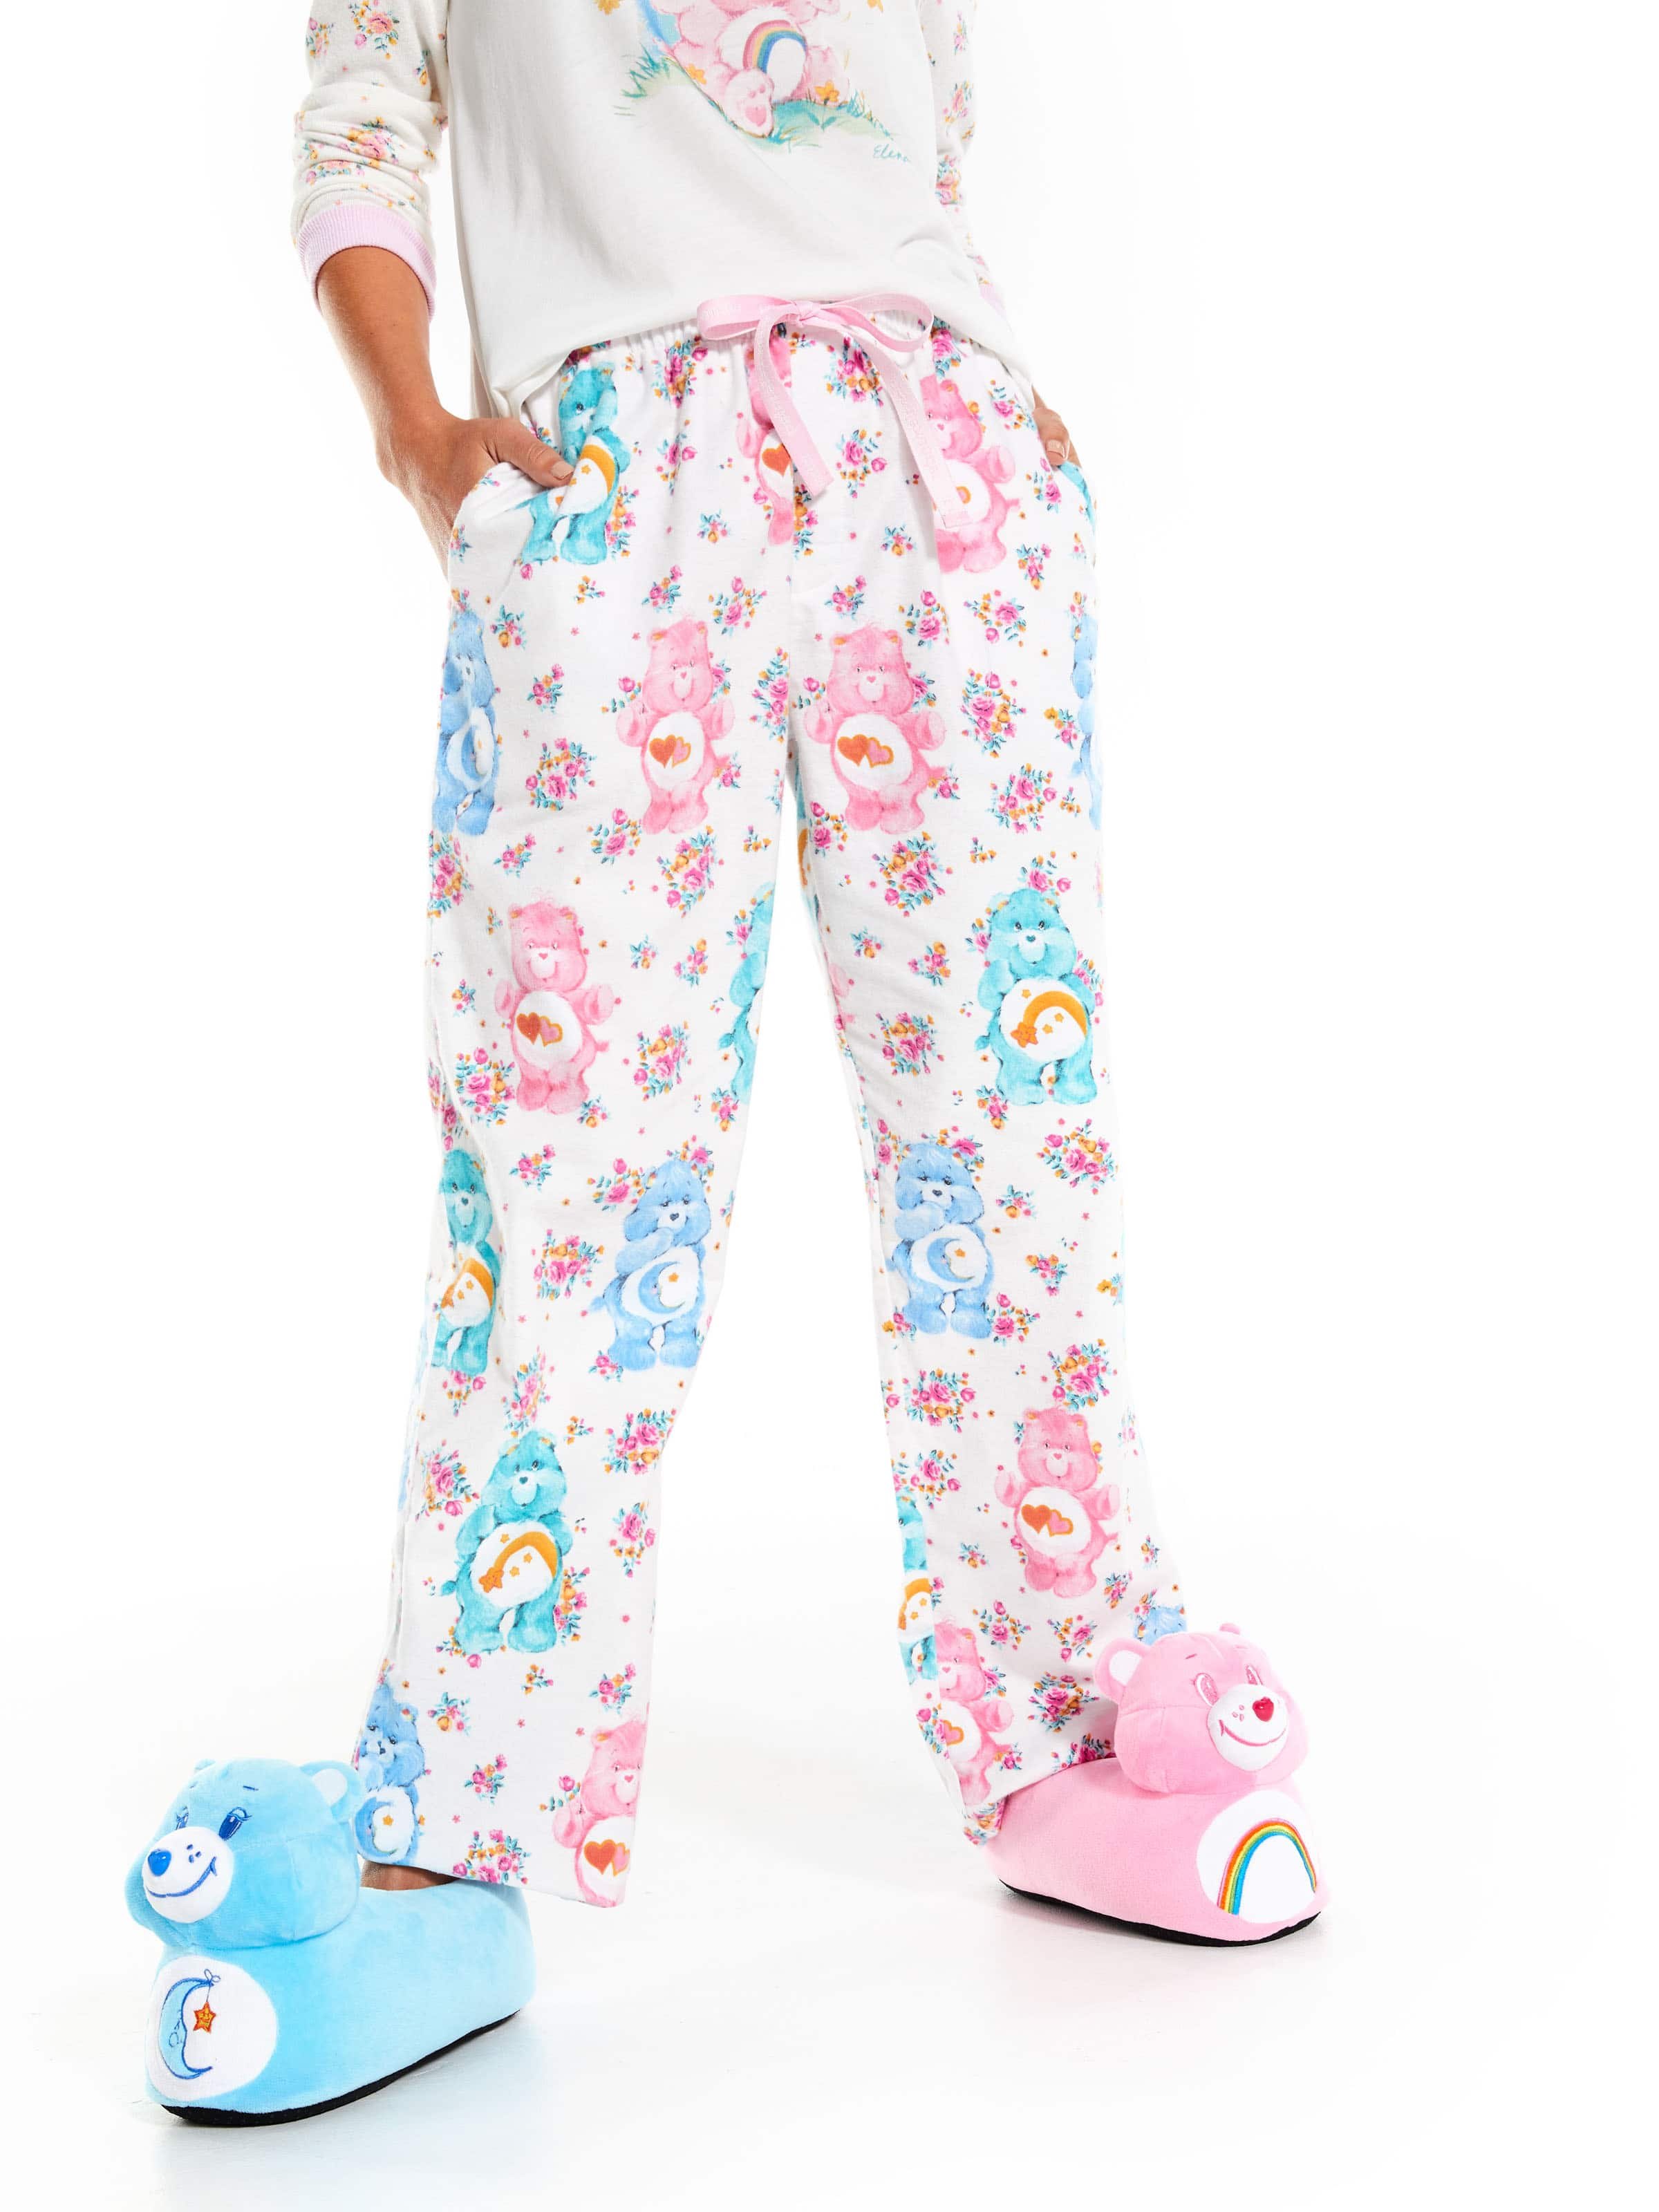 Care Bears Flannelette Classic Pj Pant by Peter Alexander